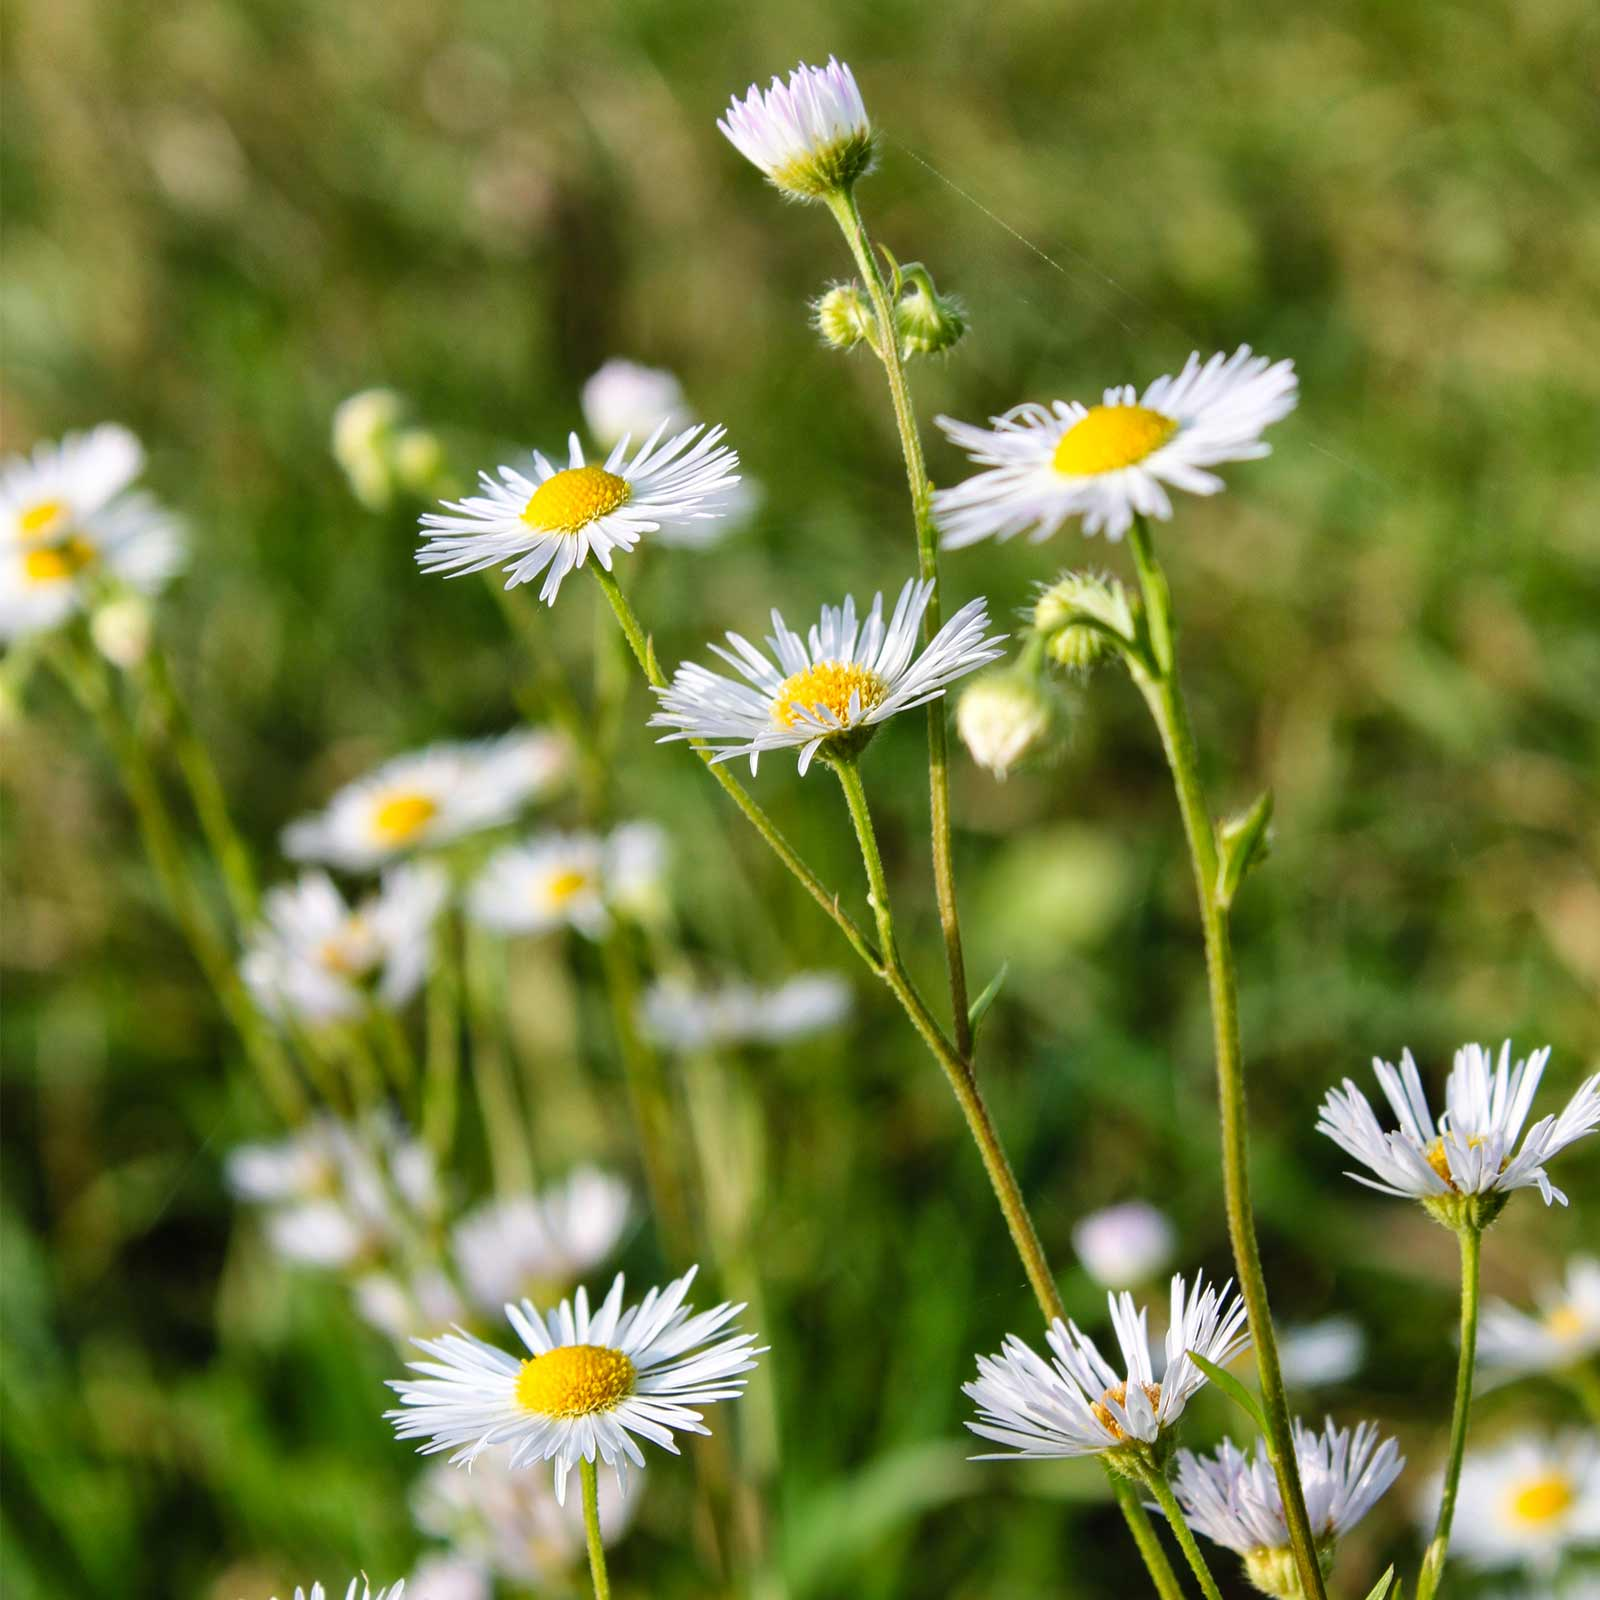 Fleabane Daisy Wildflower Garden Seeds 1 Oz Wild Flower